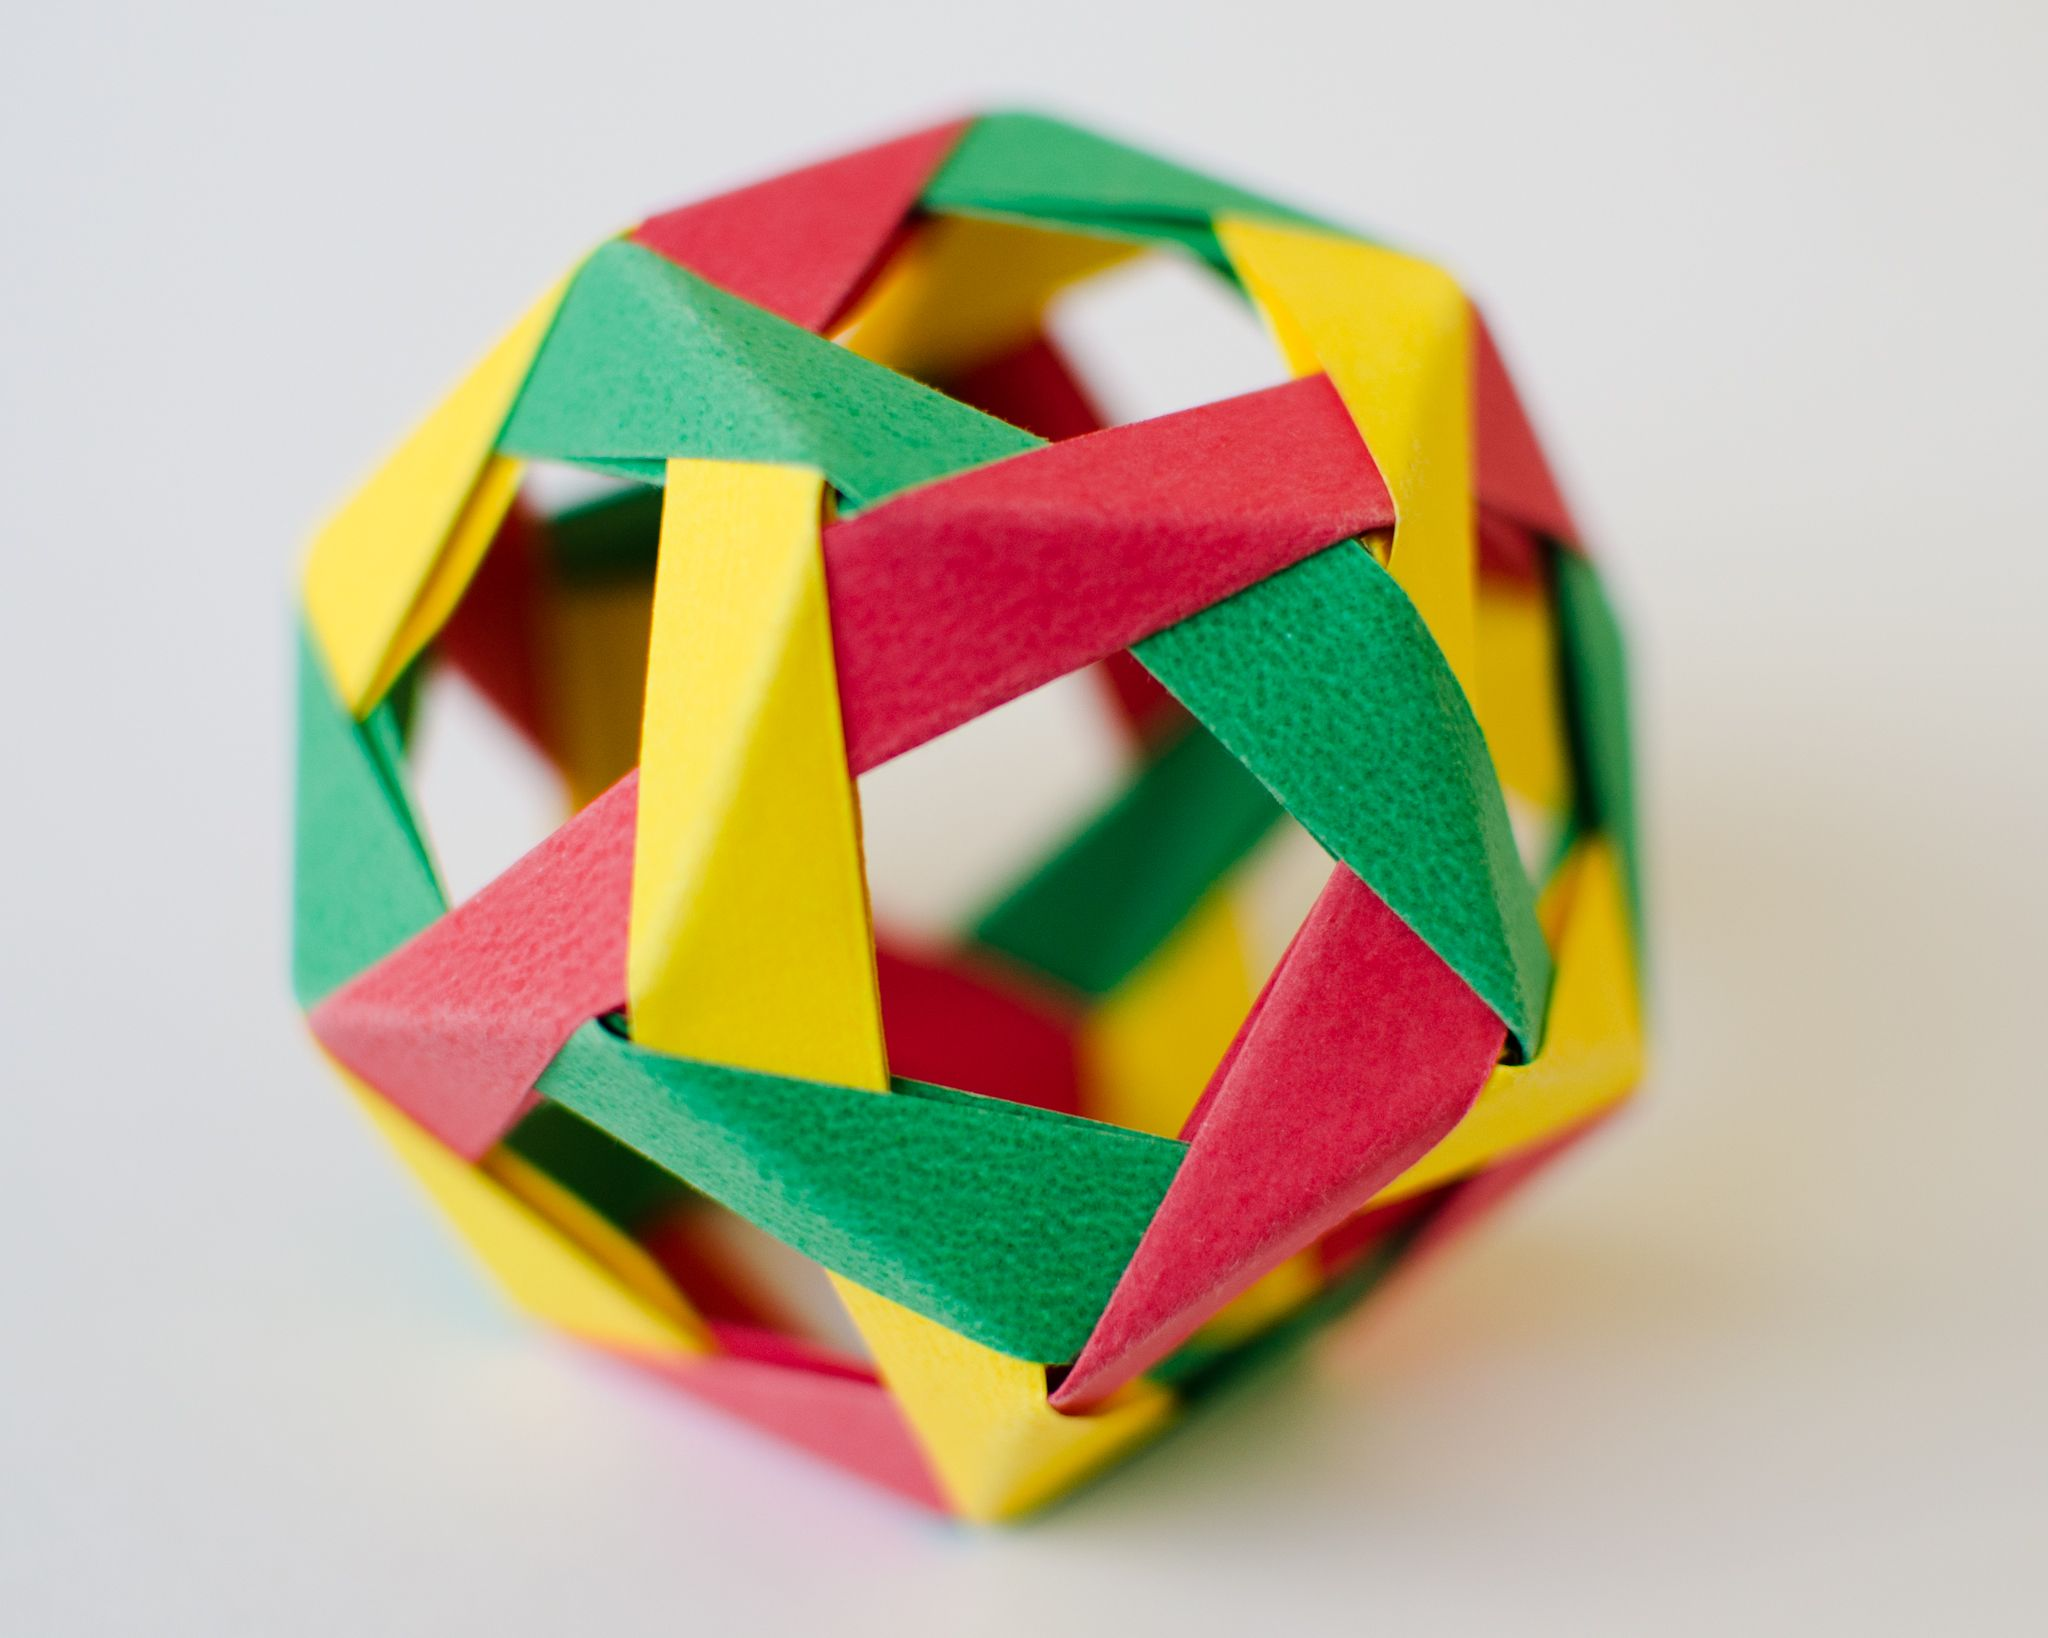 Dodecahedron Modular origami Dodecahedron Modular